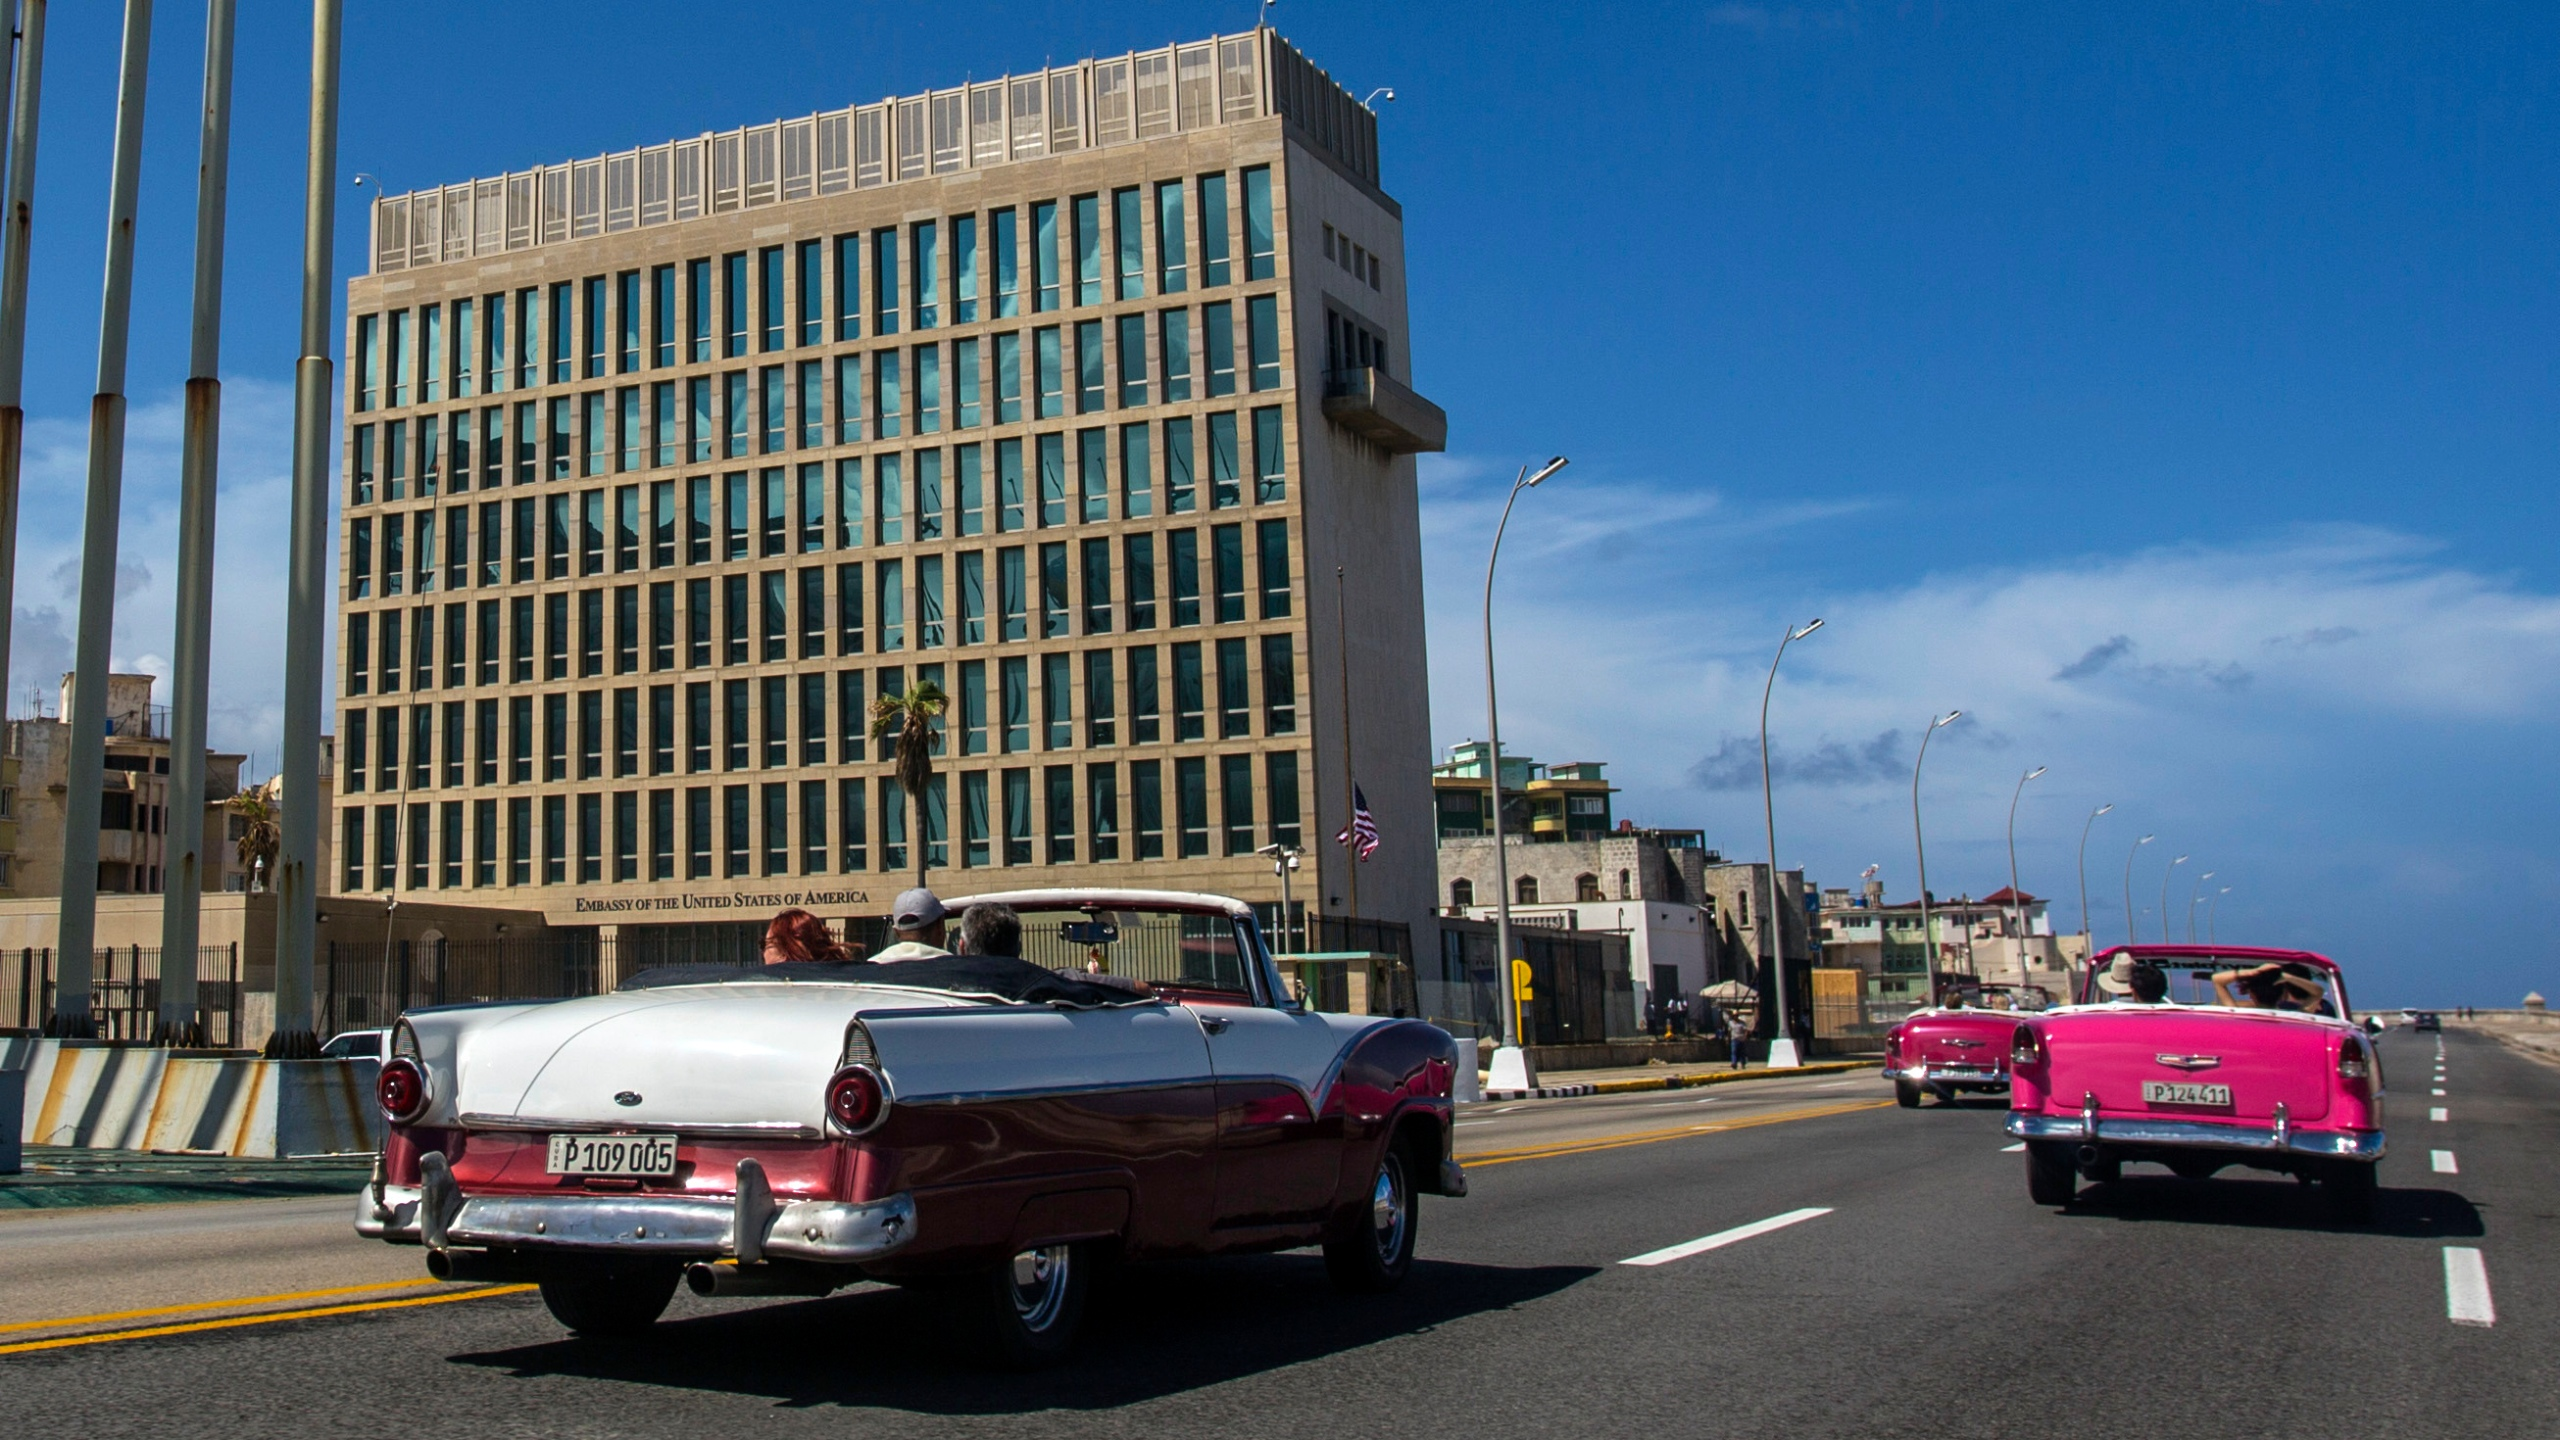 """In this Oct. 3, 2017, file photo, tourists ride classic convertible cars on the Malecon beside the United States Embassy in Havana, Cuba. The Biden administration faces increasing pressure to respond to a sharply growing number of reported injuries suffered by diplomats, intelligence officers and military personnel that some suspect are caused by devices that emit waves of energy that disrupt brain function. The problem has been labeled the """"Havana Syndrome,"""" because the first cases affected personnel in 2016 at the U.S. Embassy in Cuba. (AP Photo/Desmond Boylan, File)"""